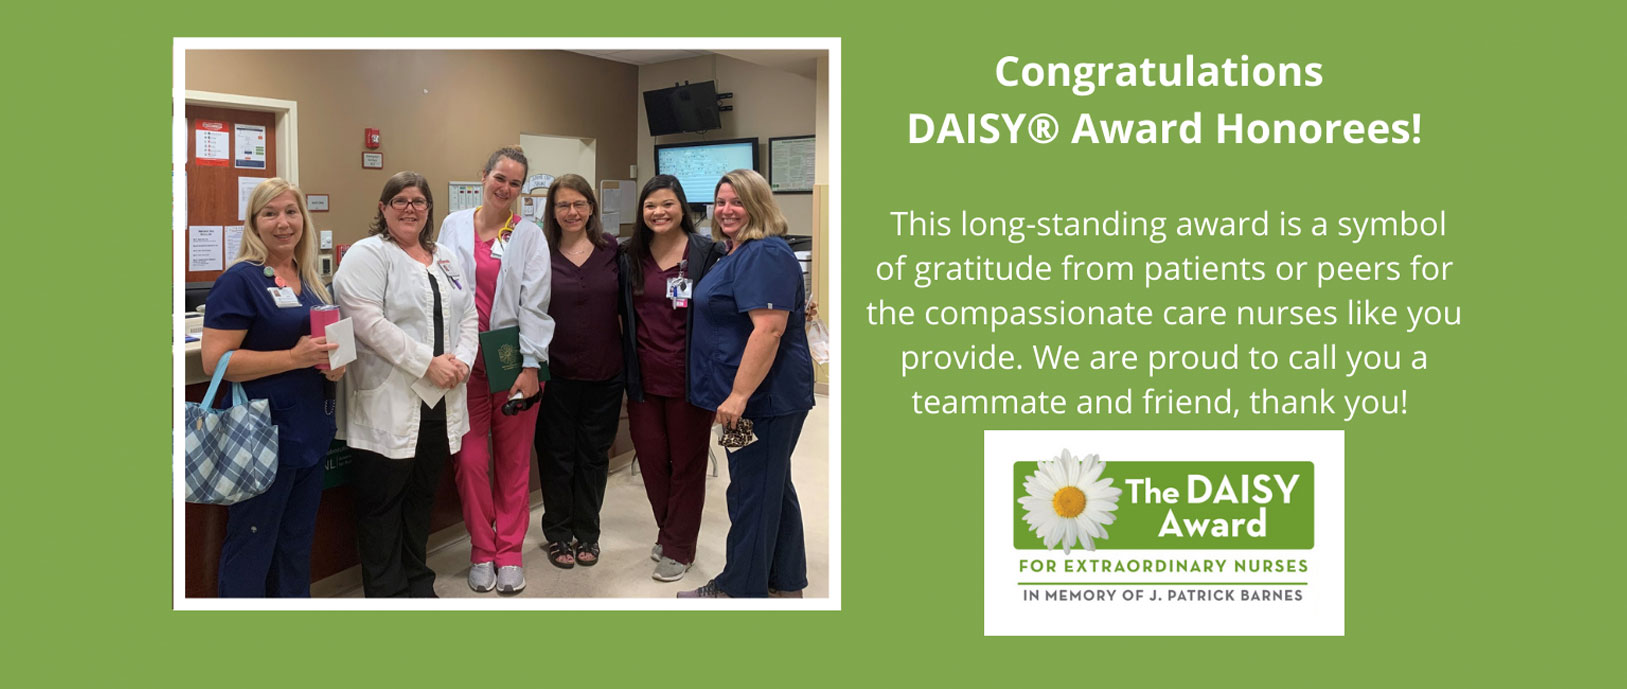 Congratulations Daisy Award Honorees!  Pictured are our Daisy Award Honorees!